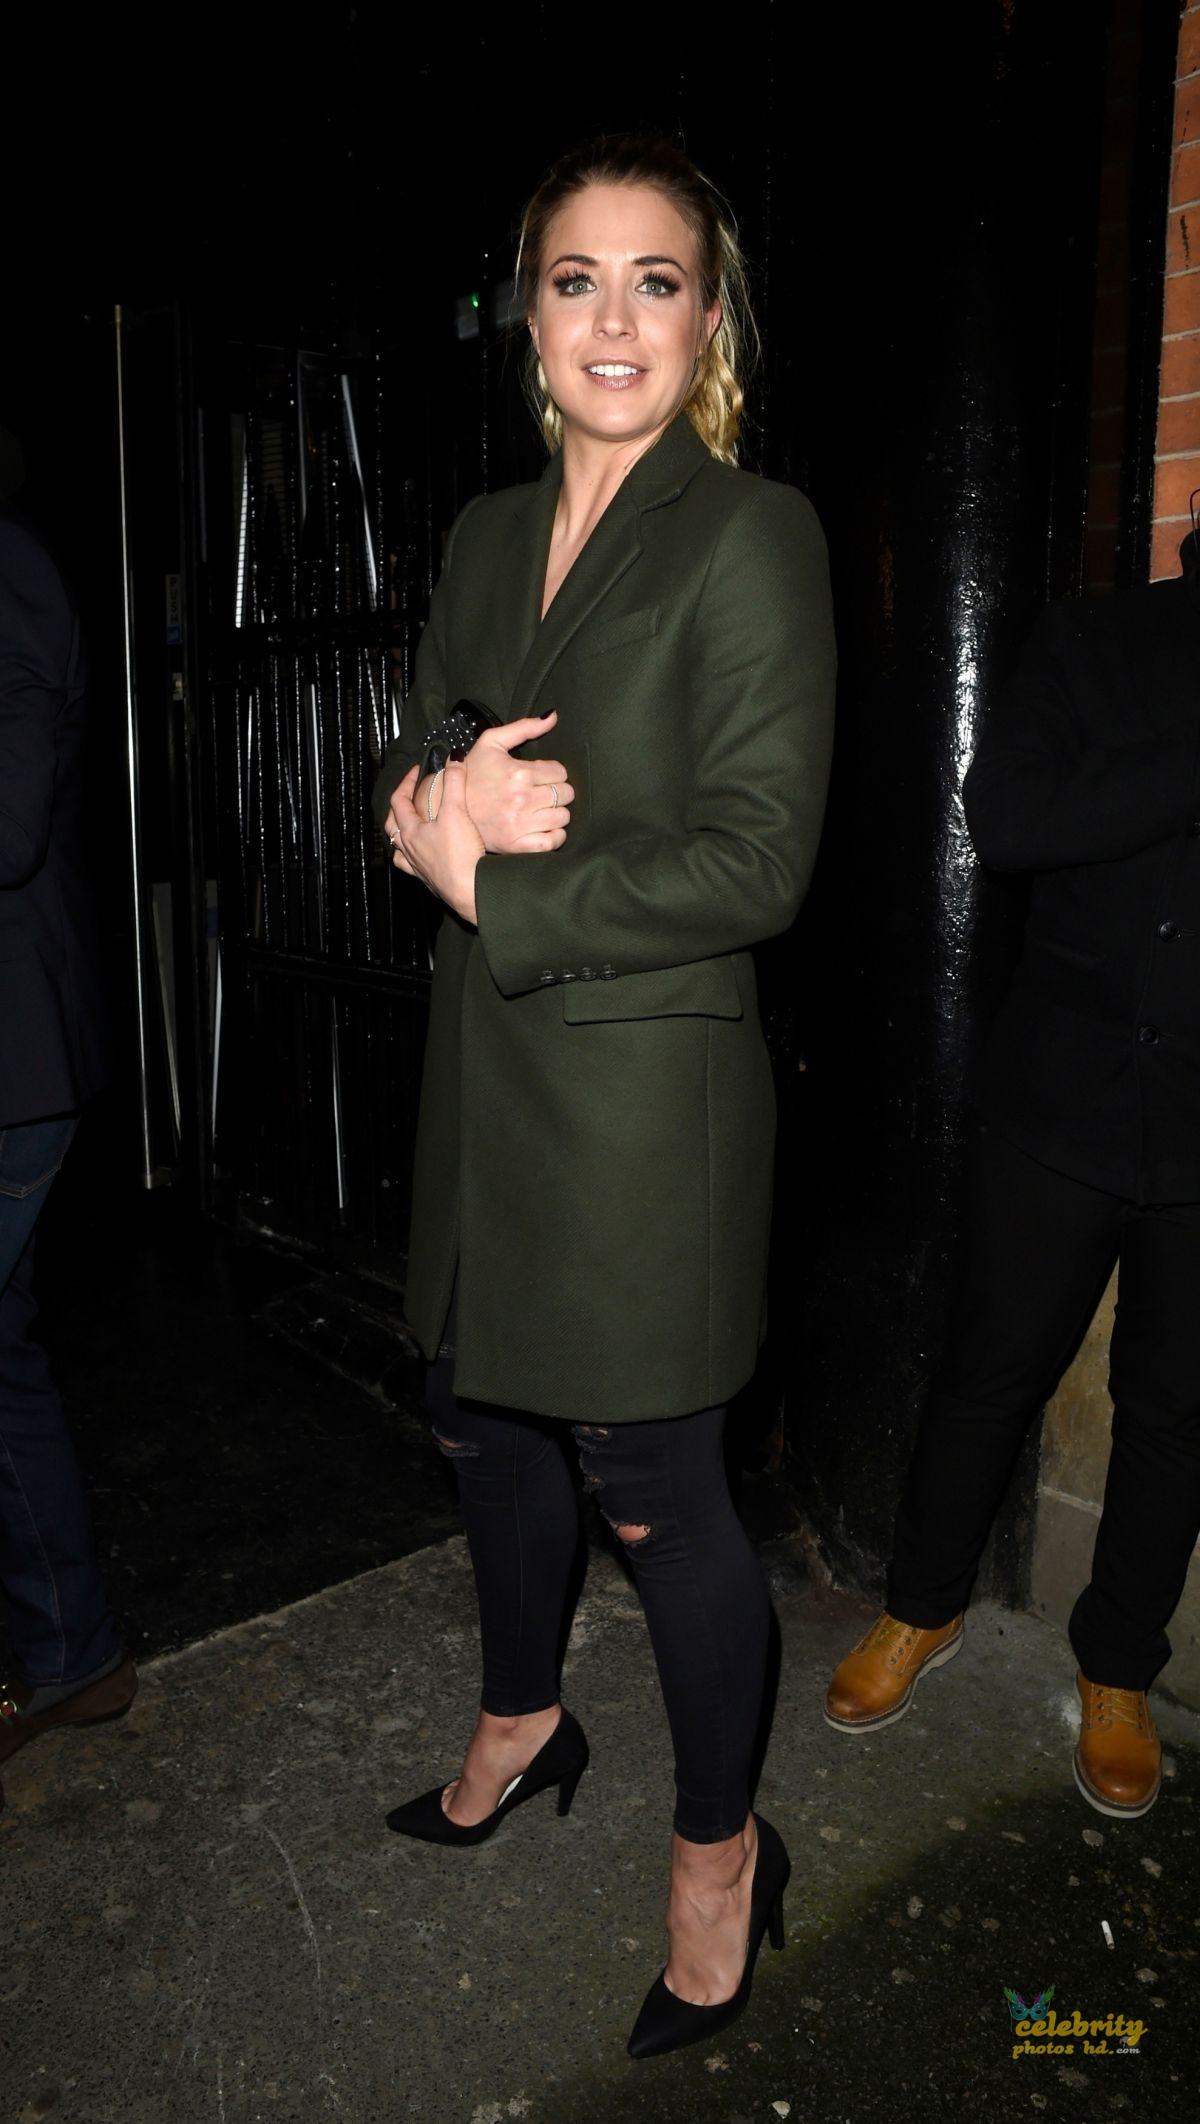 GEMMA ATKINSON Night Out in Manchester (2)